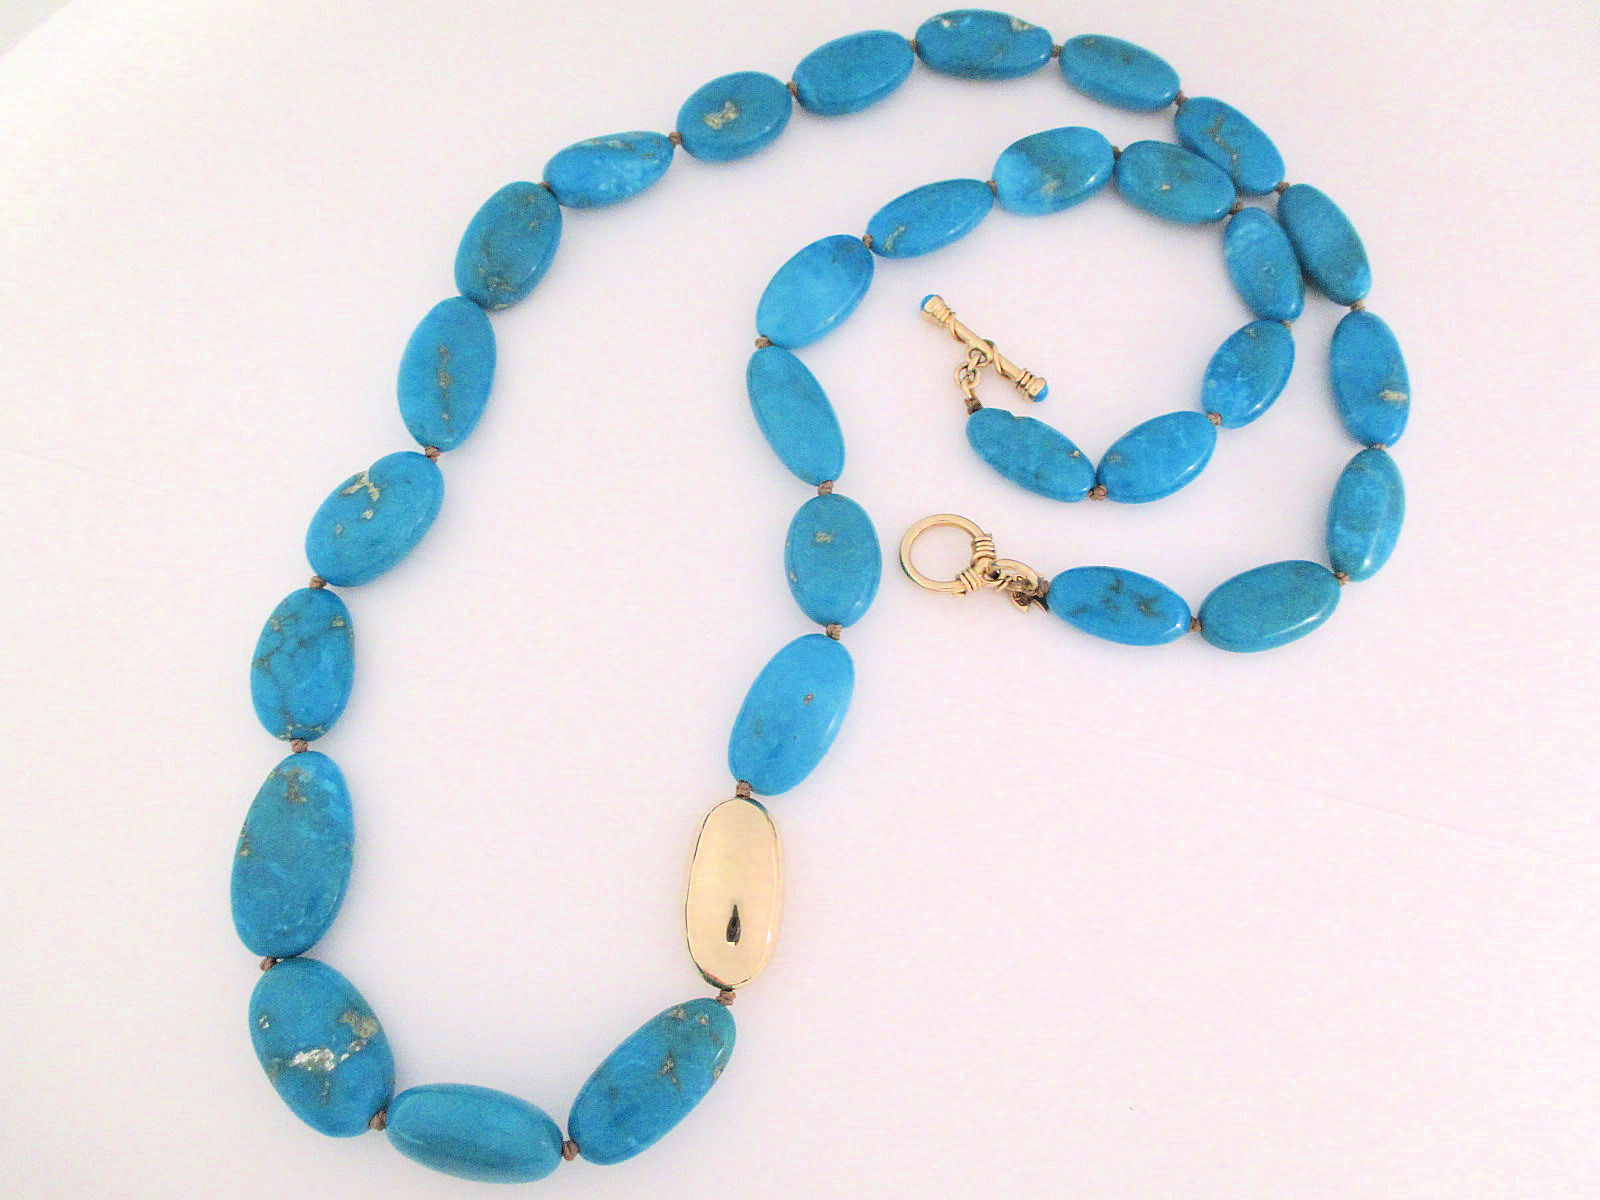 Sleeping Beauty Turquoise Necklace with 14kt Gold